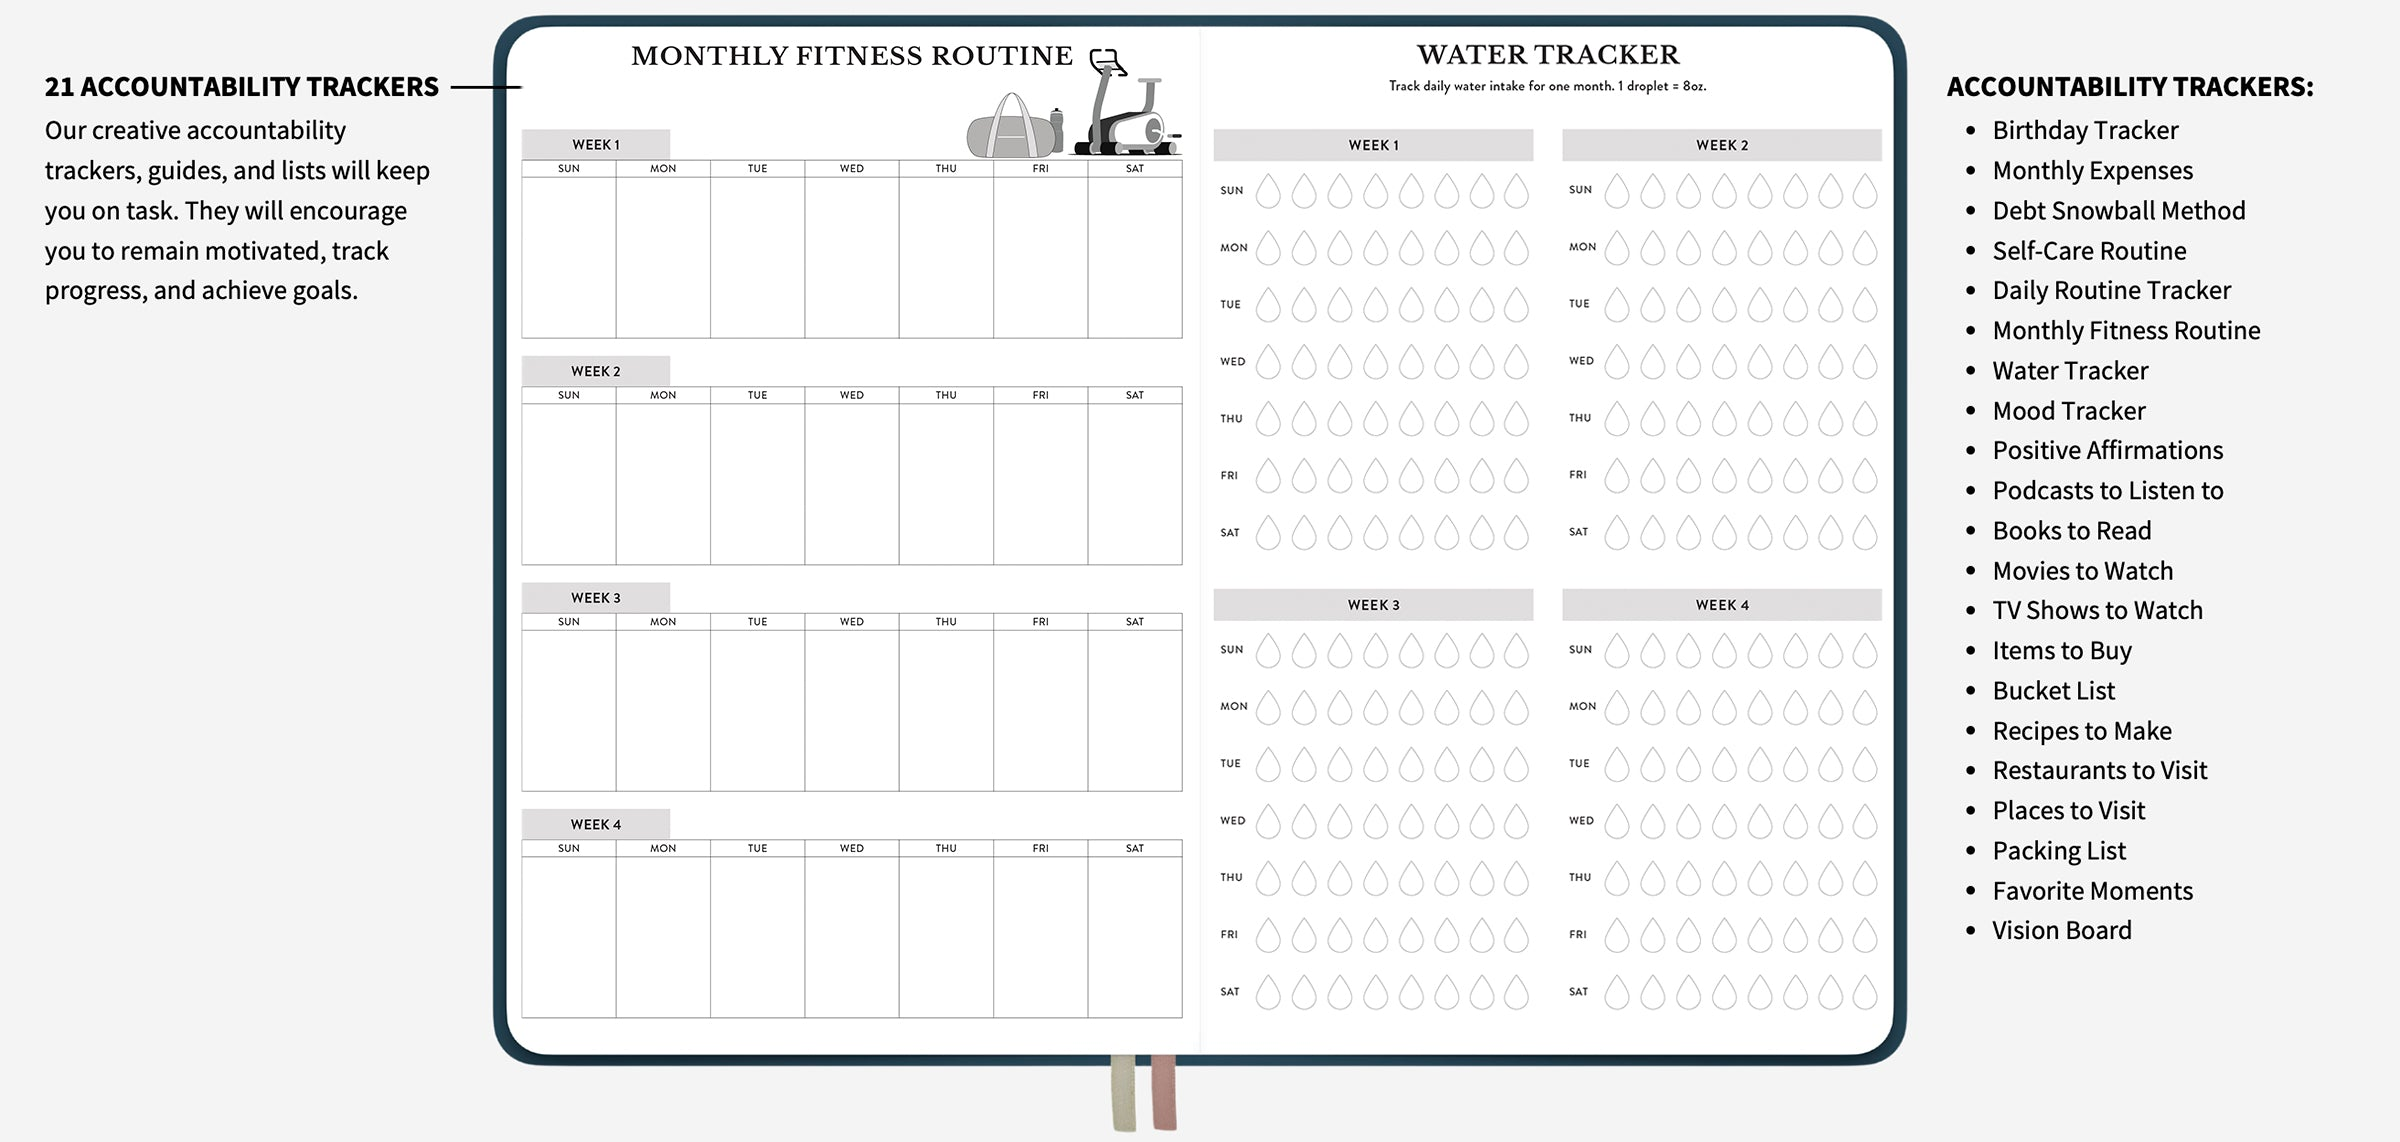 Picture of the Monthly Fitness Routine tracker and Water tracker